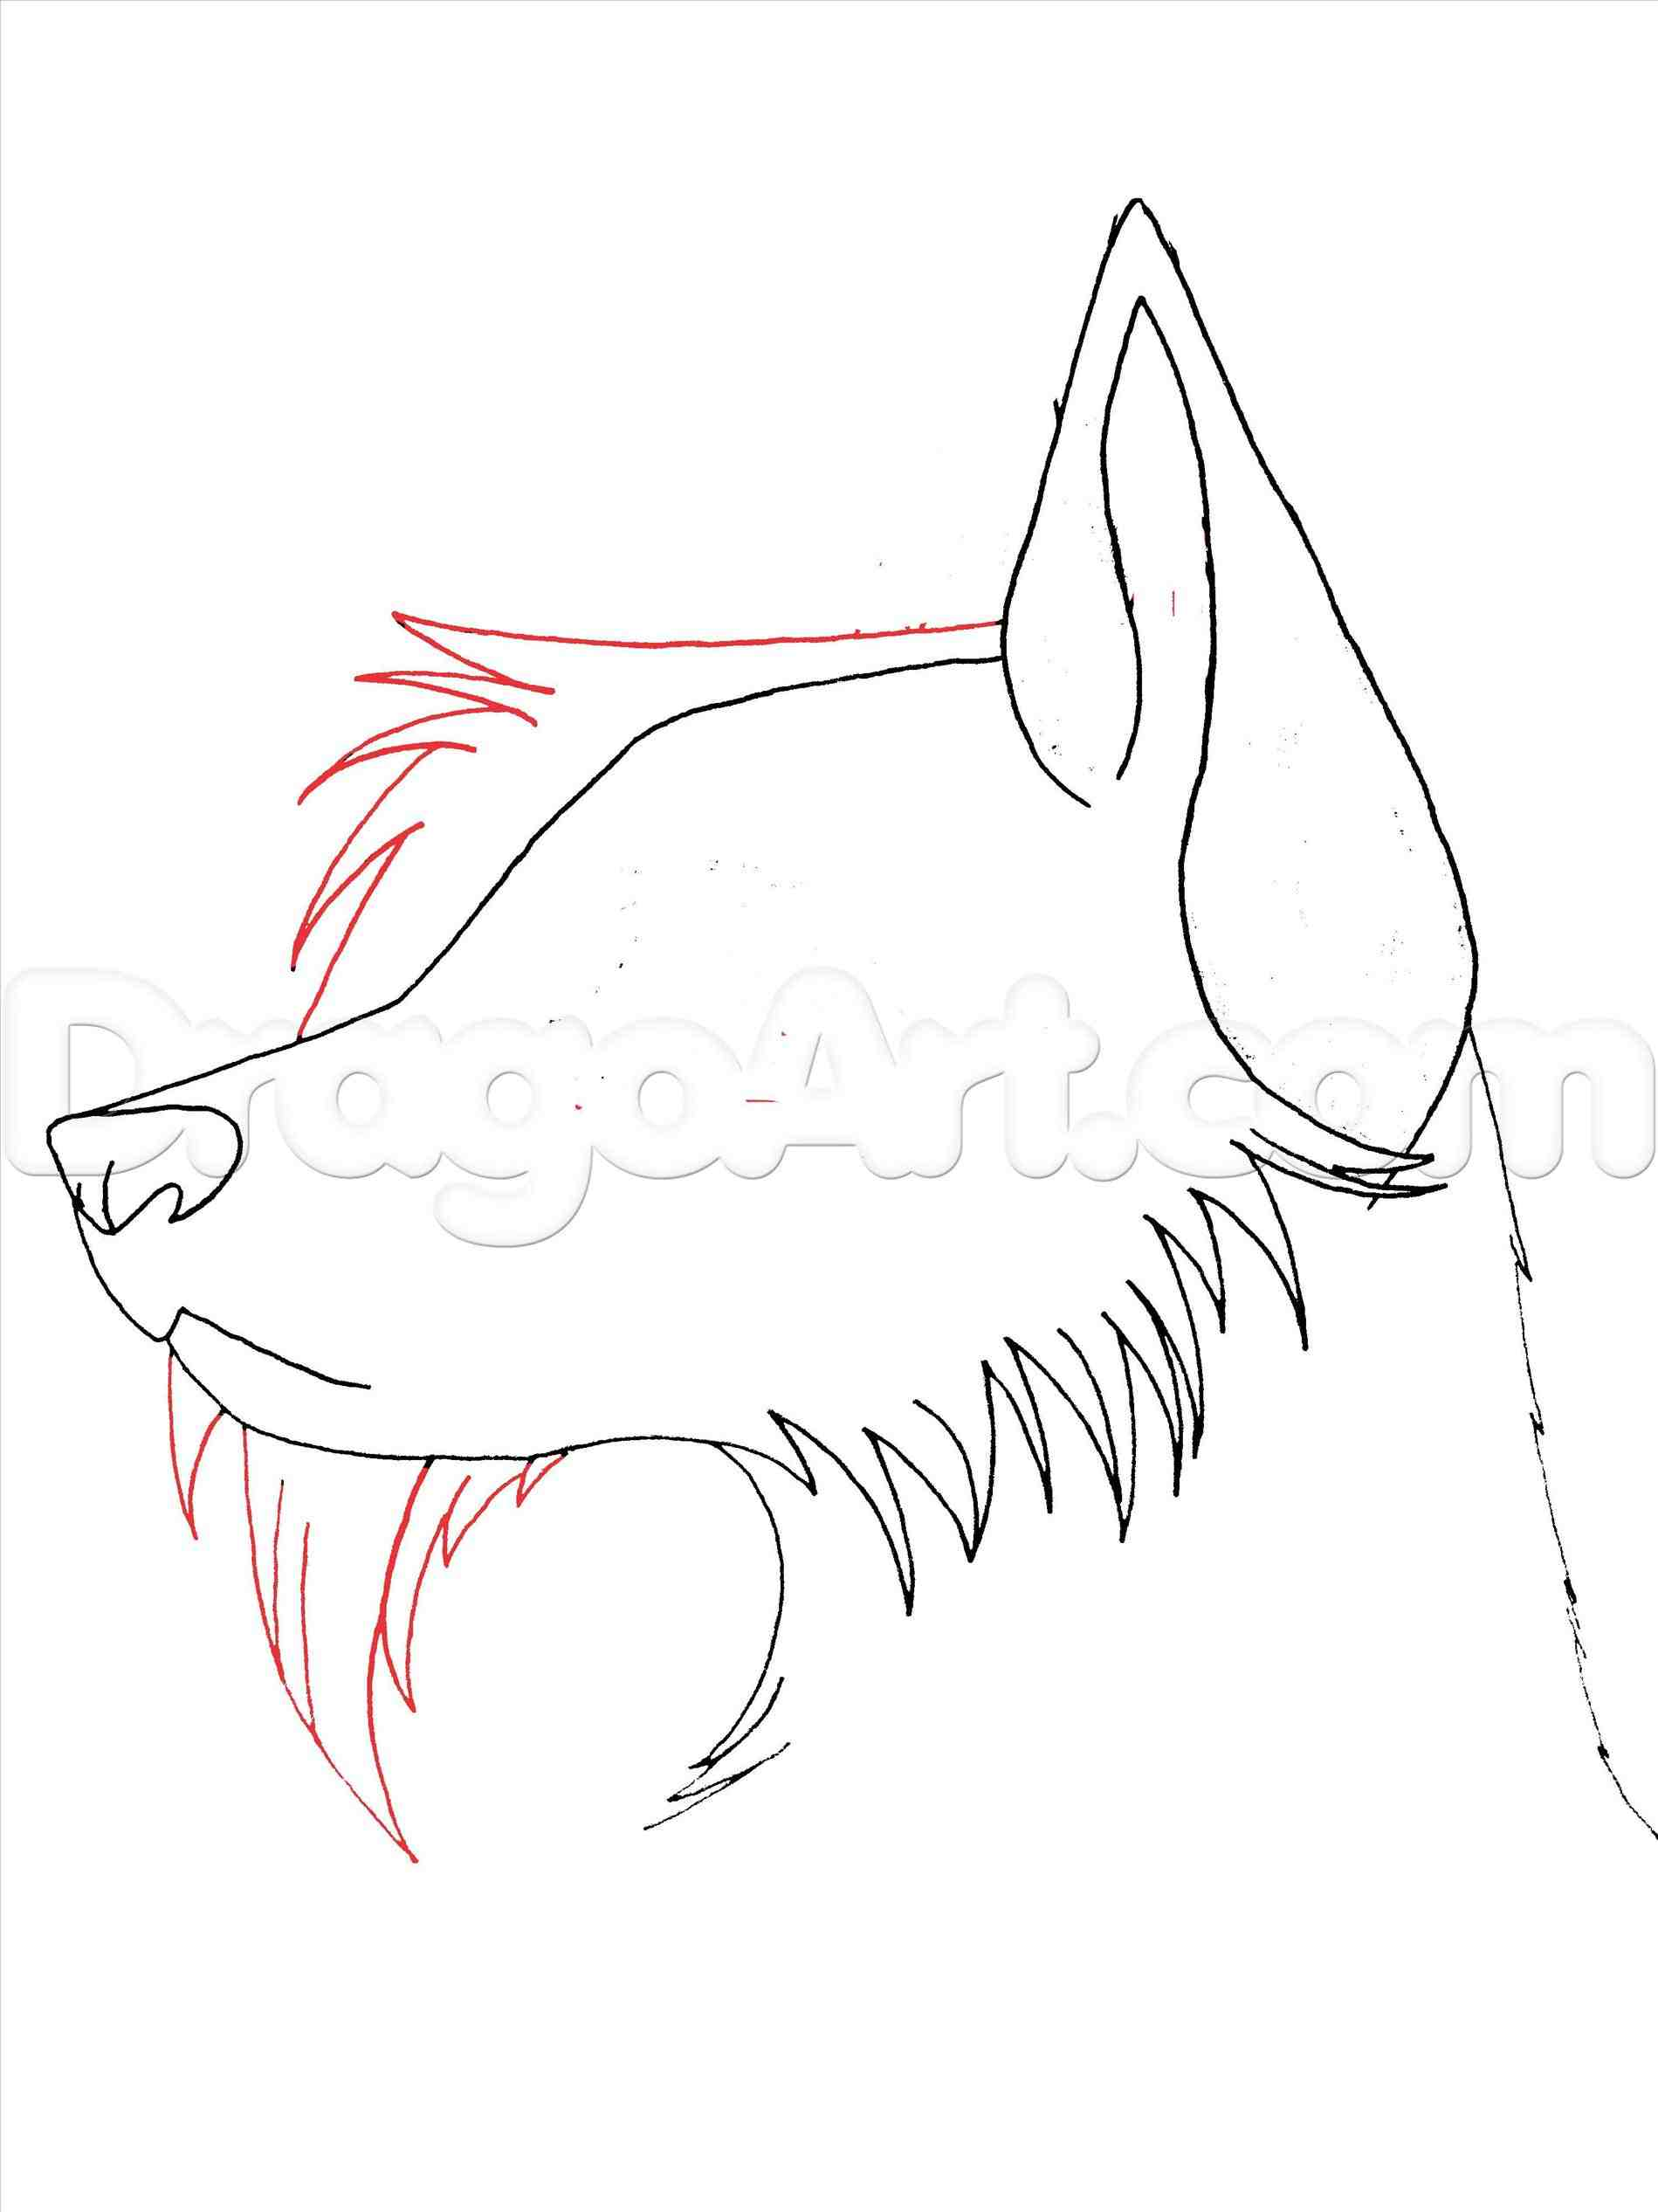 Anime Wolf Head Drawing Tutorial Prettier How To Draw Eye Diagram By Brittlebear On Deviantart At Getdrawings Com Free For Personal Use